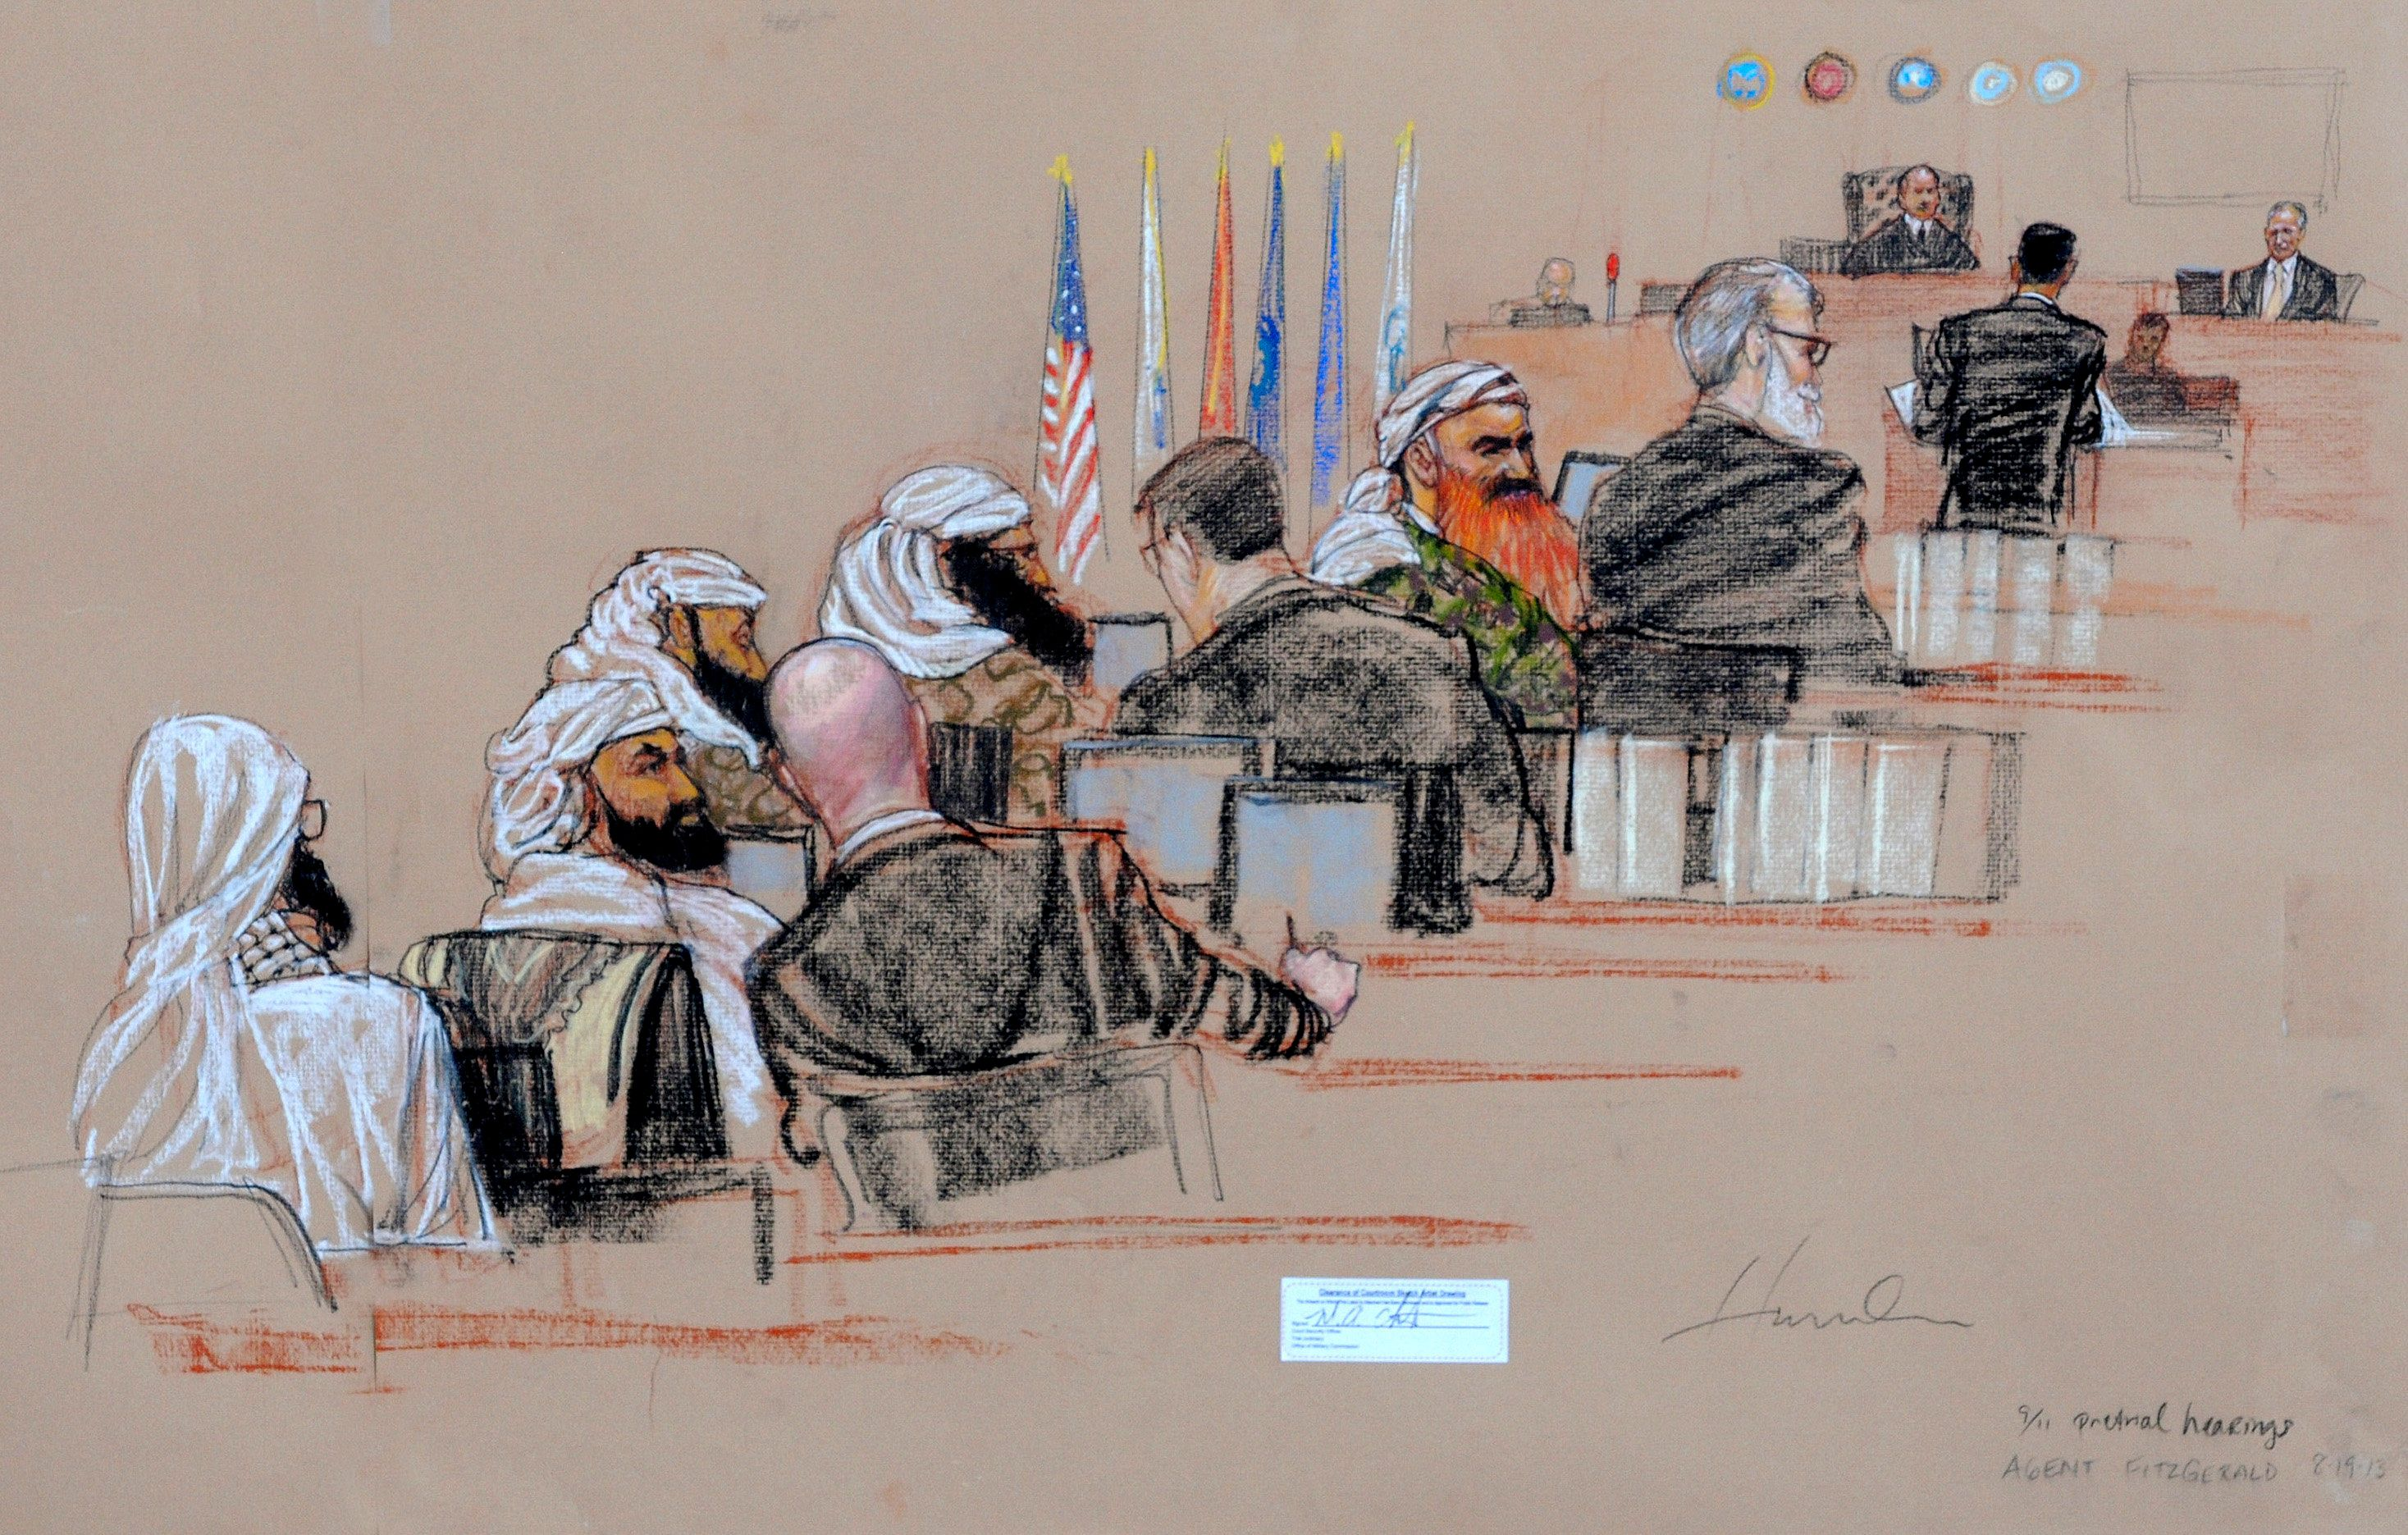 Five men accused of planning the Sept. 11 attacks were captured over a decade ago, but their trial still...